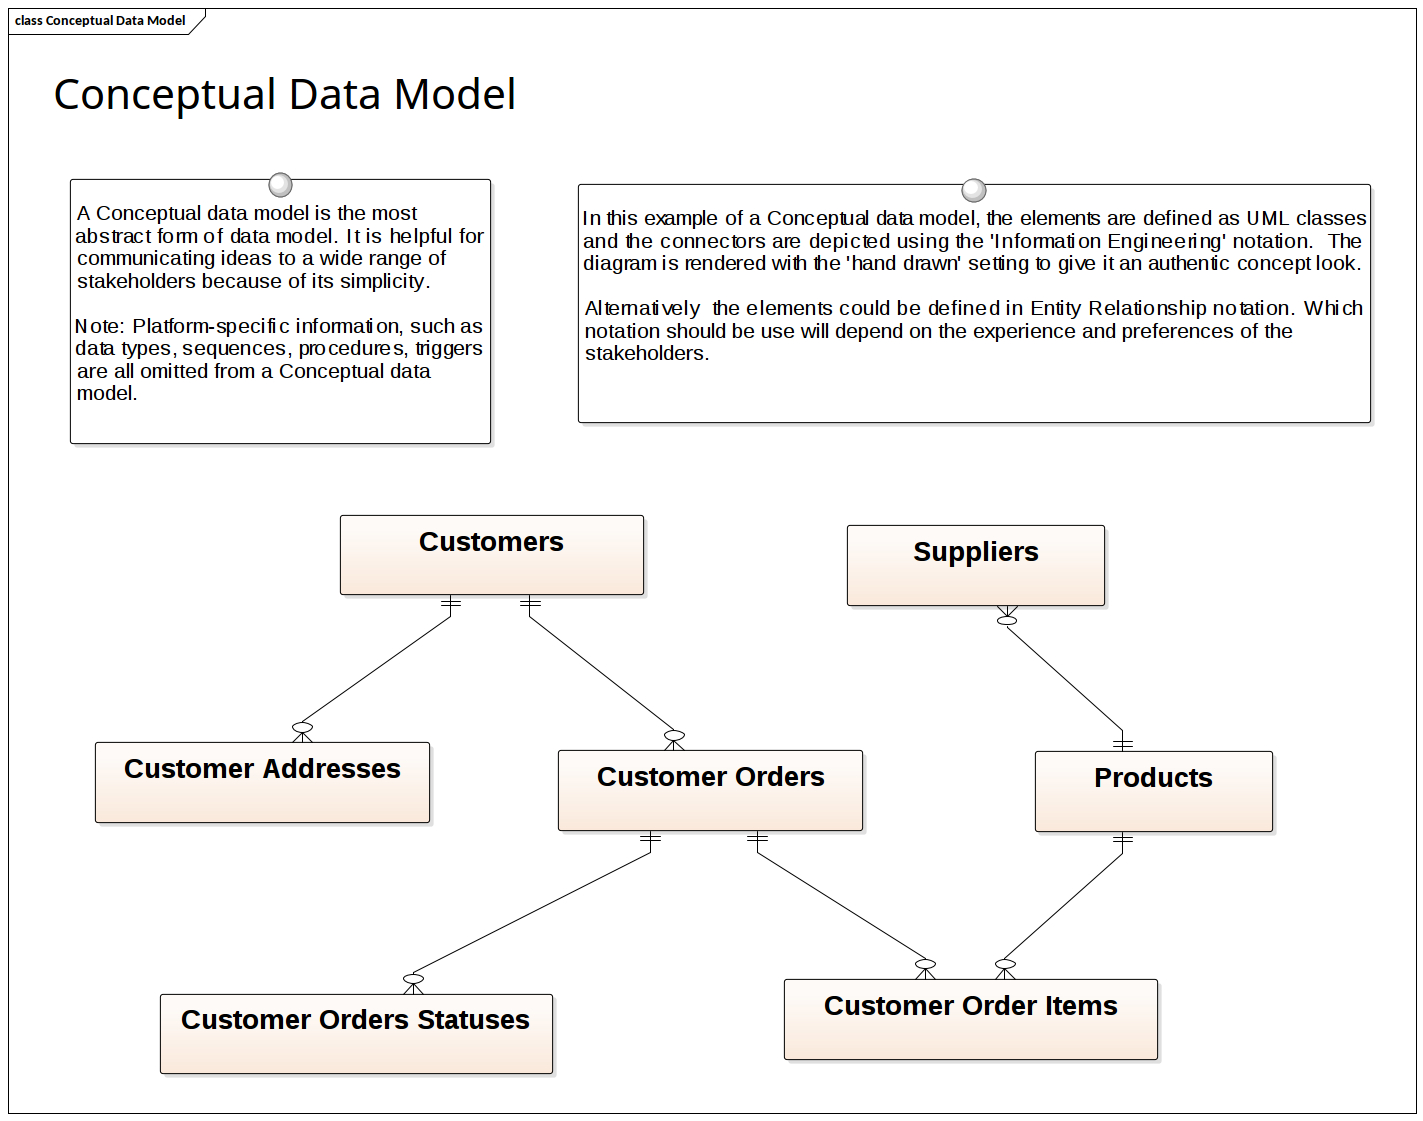 Data Modeling - Conceptual Data Model | Enterprise Architect within Conceptual Entity Relationship Diagram